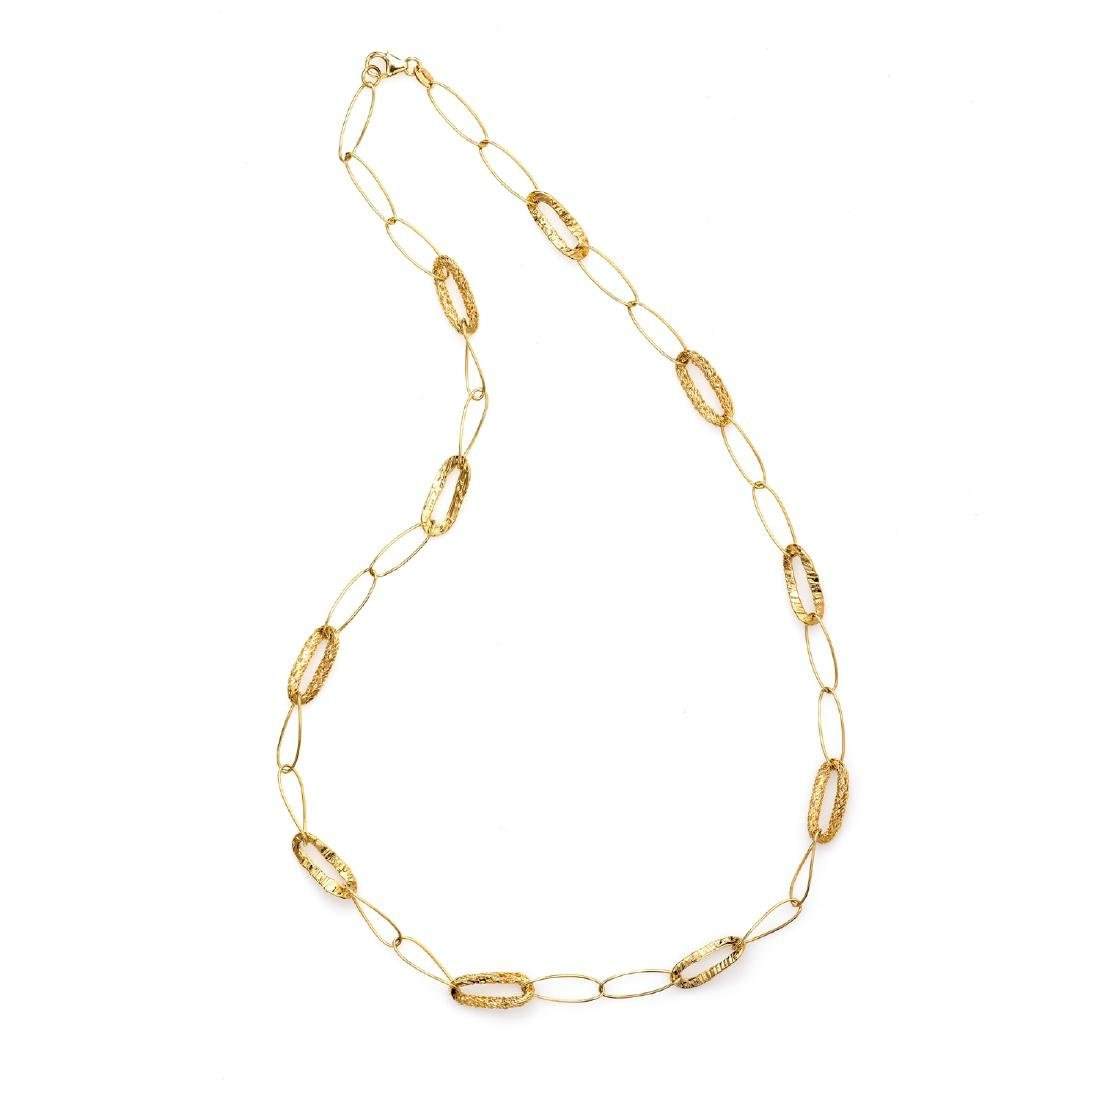 *Fine Jewelry 14 KT Gold, Oval Links, Open Cage, 7.5GR.